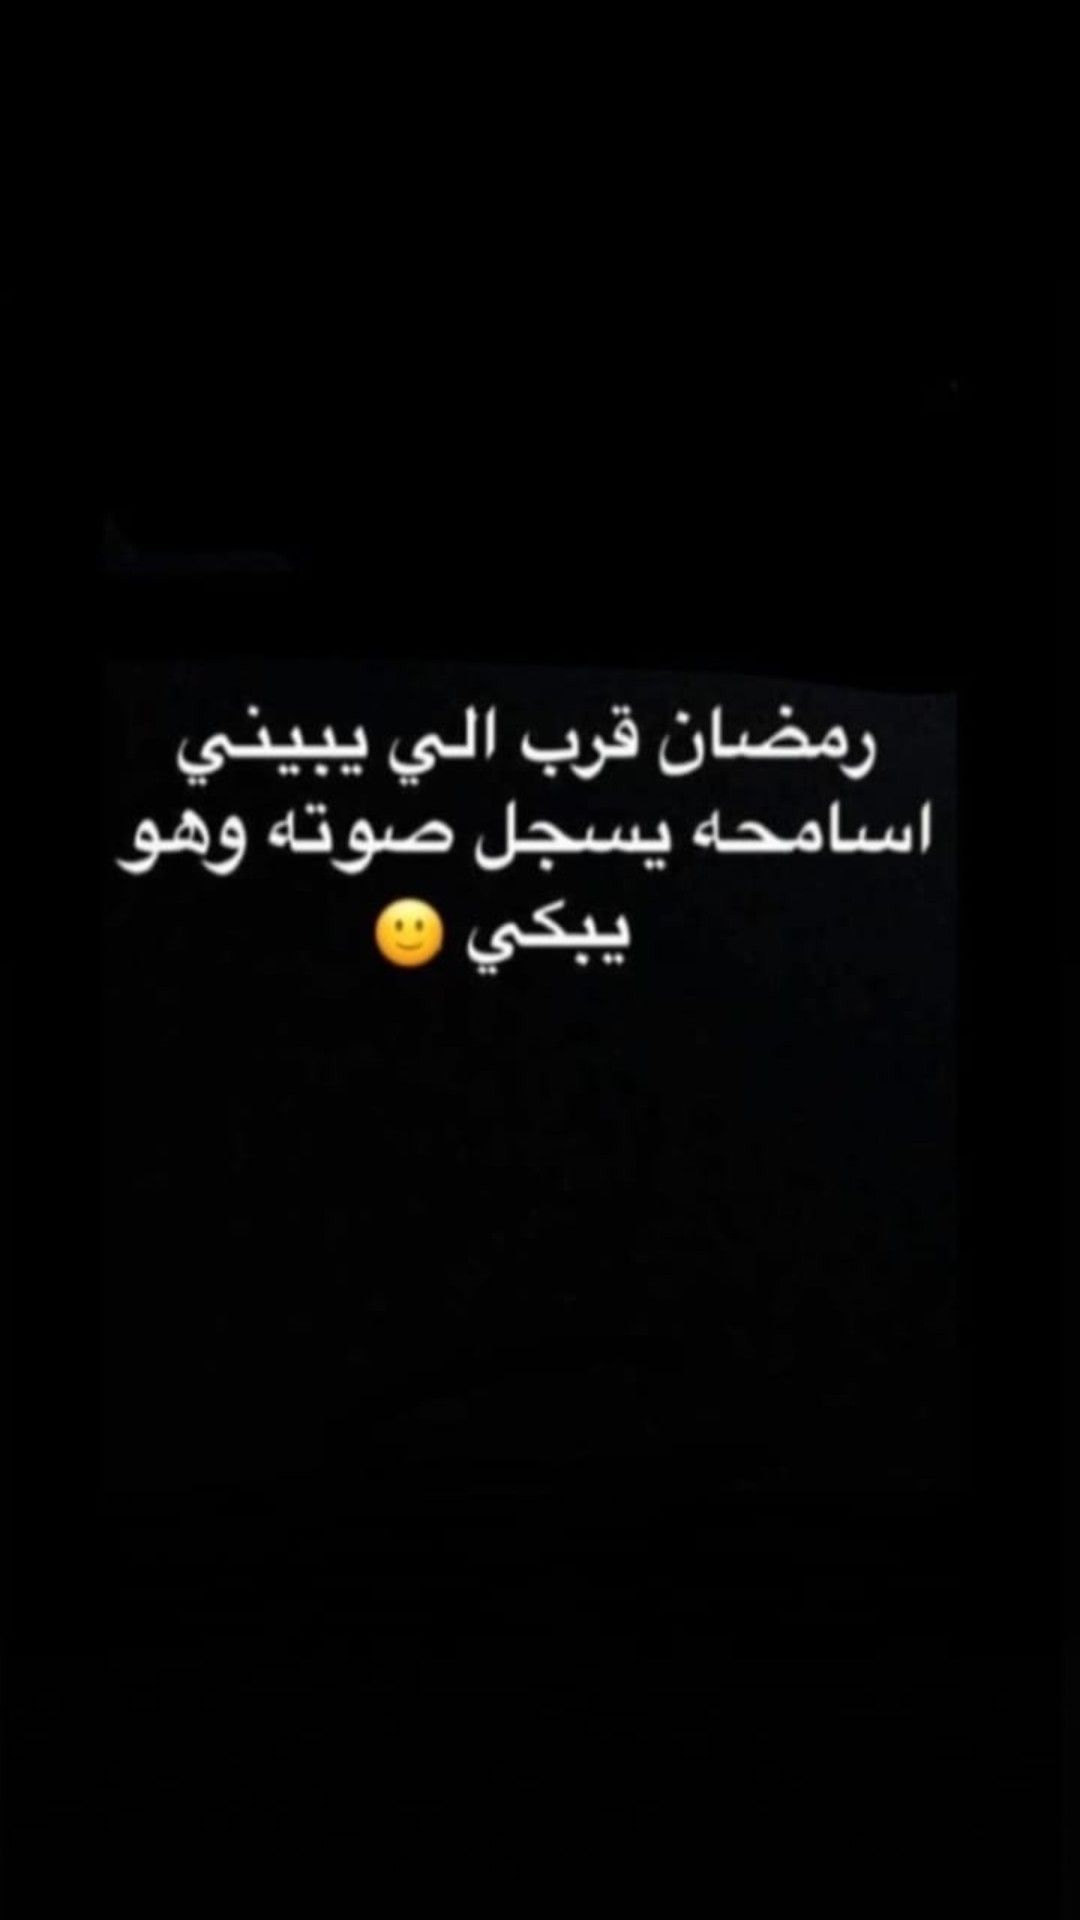 Pin By صمتي حكايہ On فله تايم Jokes Quotes Funny Words Funny Arabic Quotes